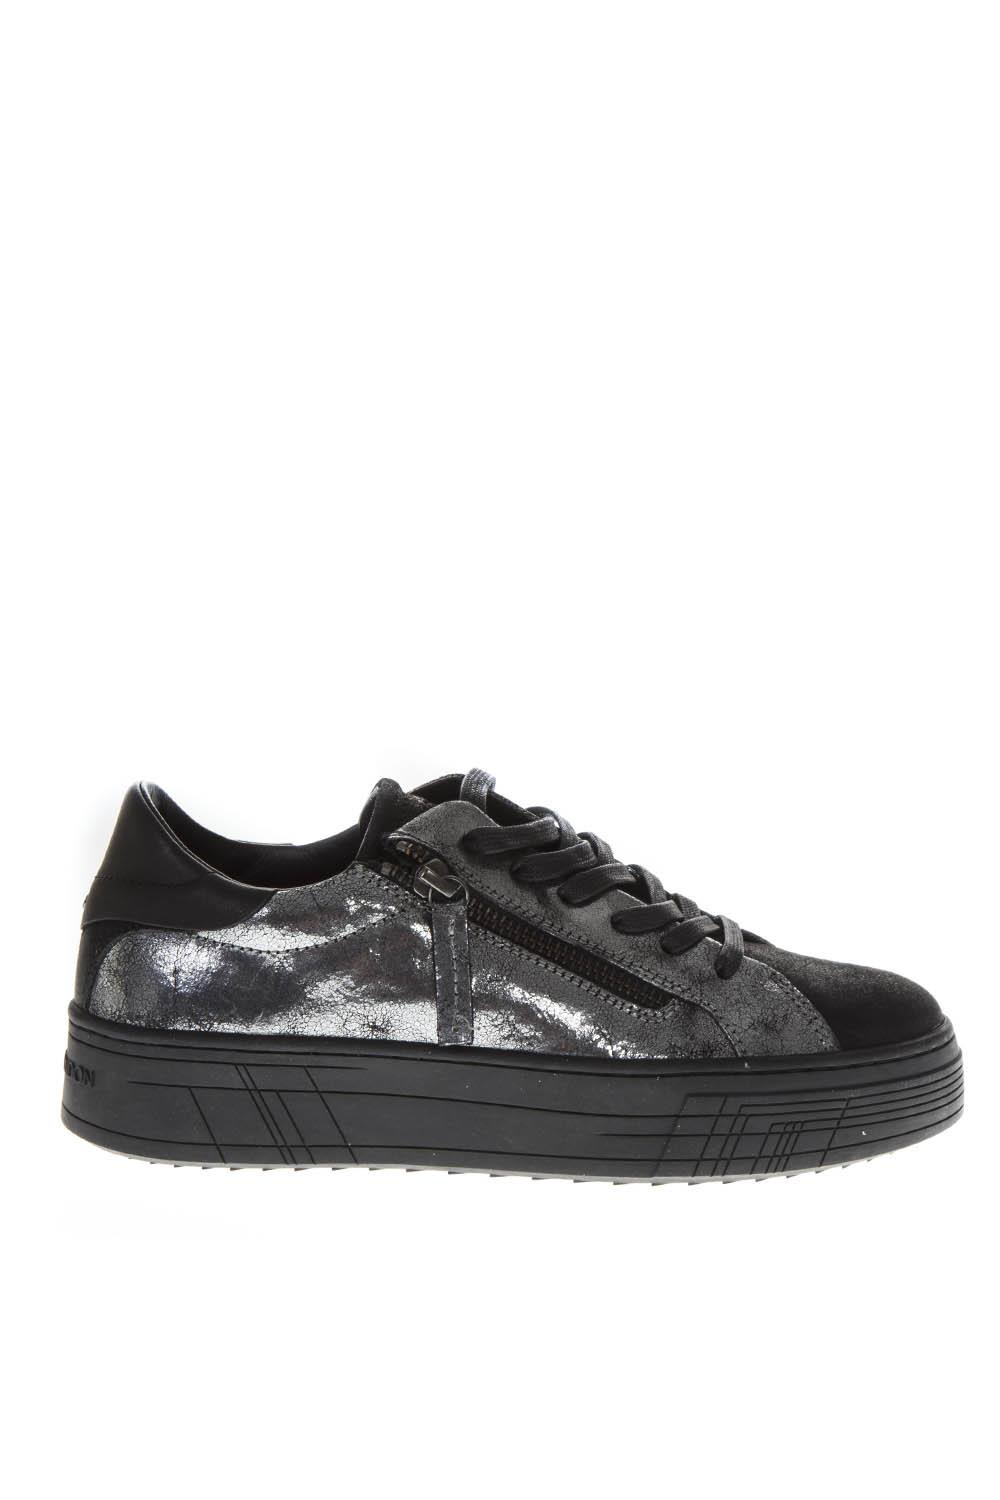 40b0f12df44b0 SILVER LEATHER LOW-TOP SNEAKERS FW 2018 - CRIME LONDON - Boutique Galiano